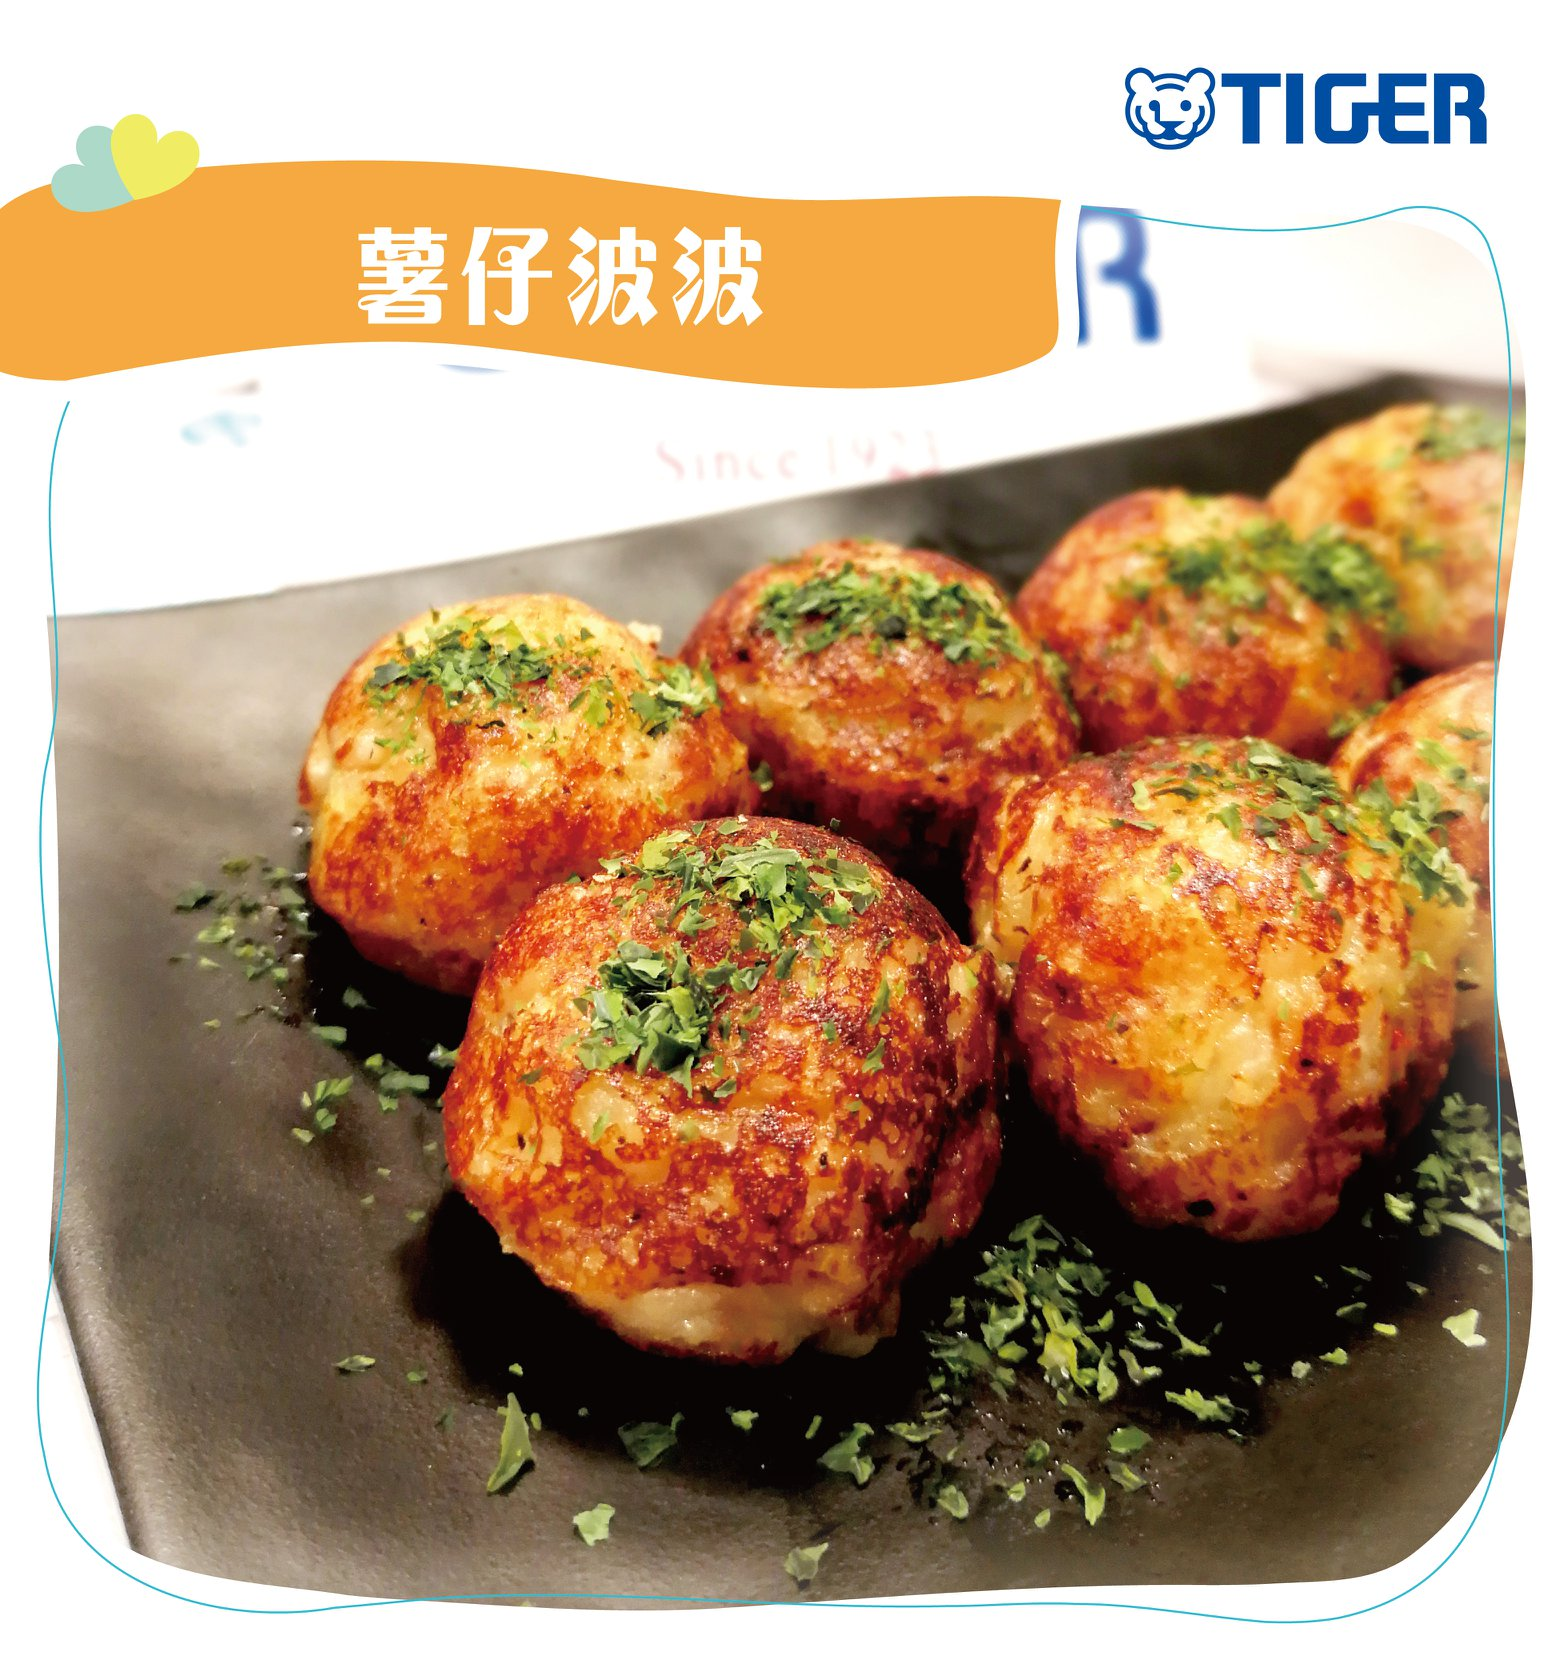 TIGER-recipe-potato-balls.jpg (363 KB)